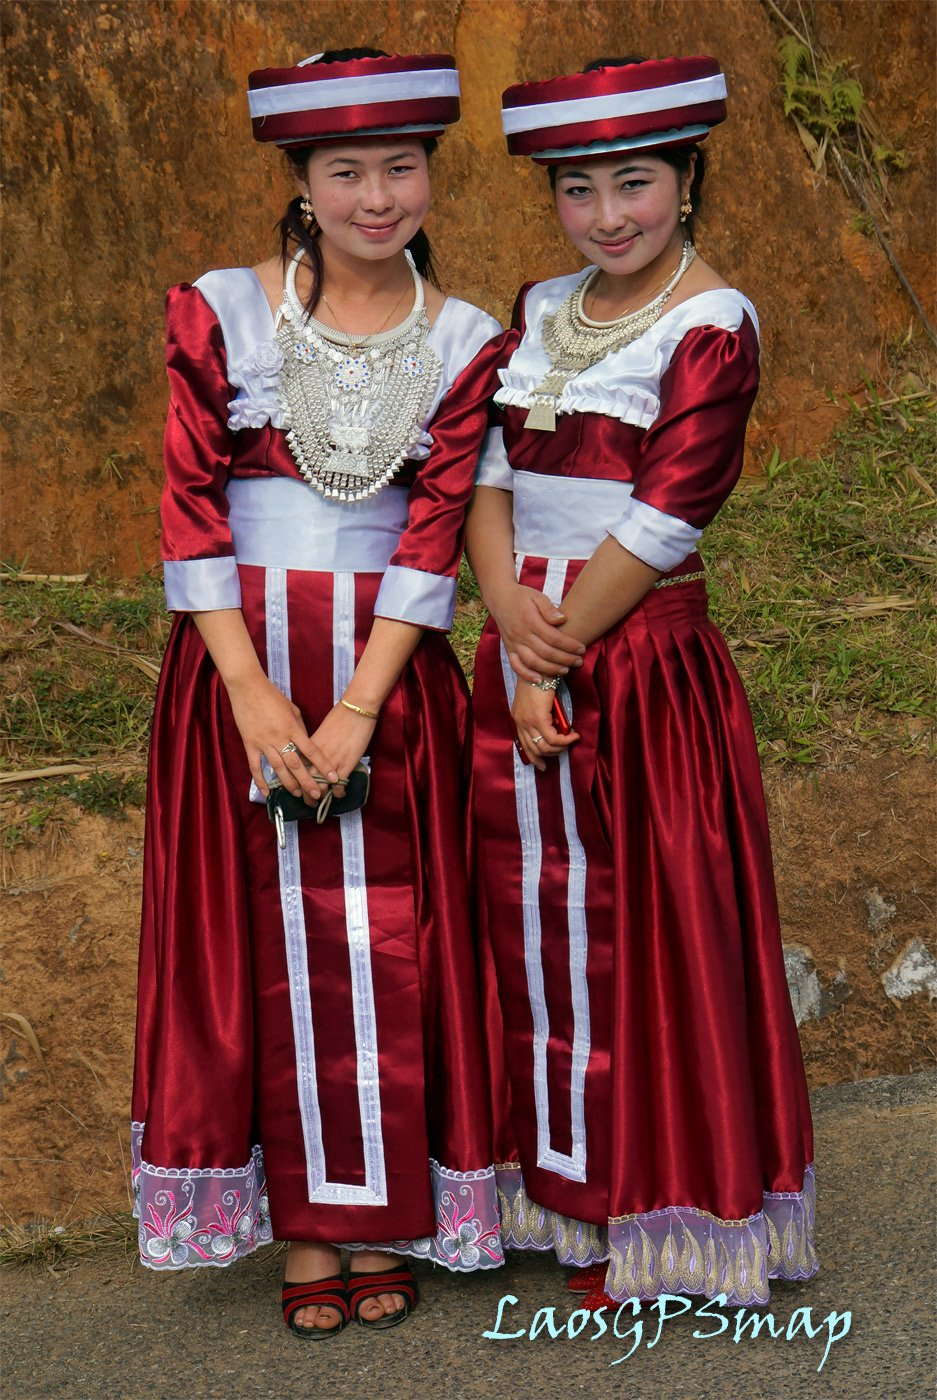 Hmong Festival Phou Khoun District Laos